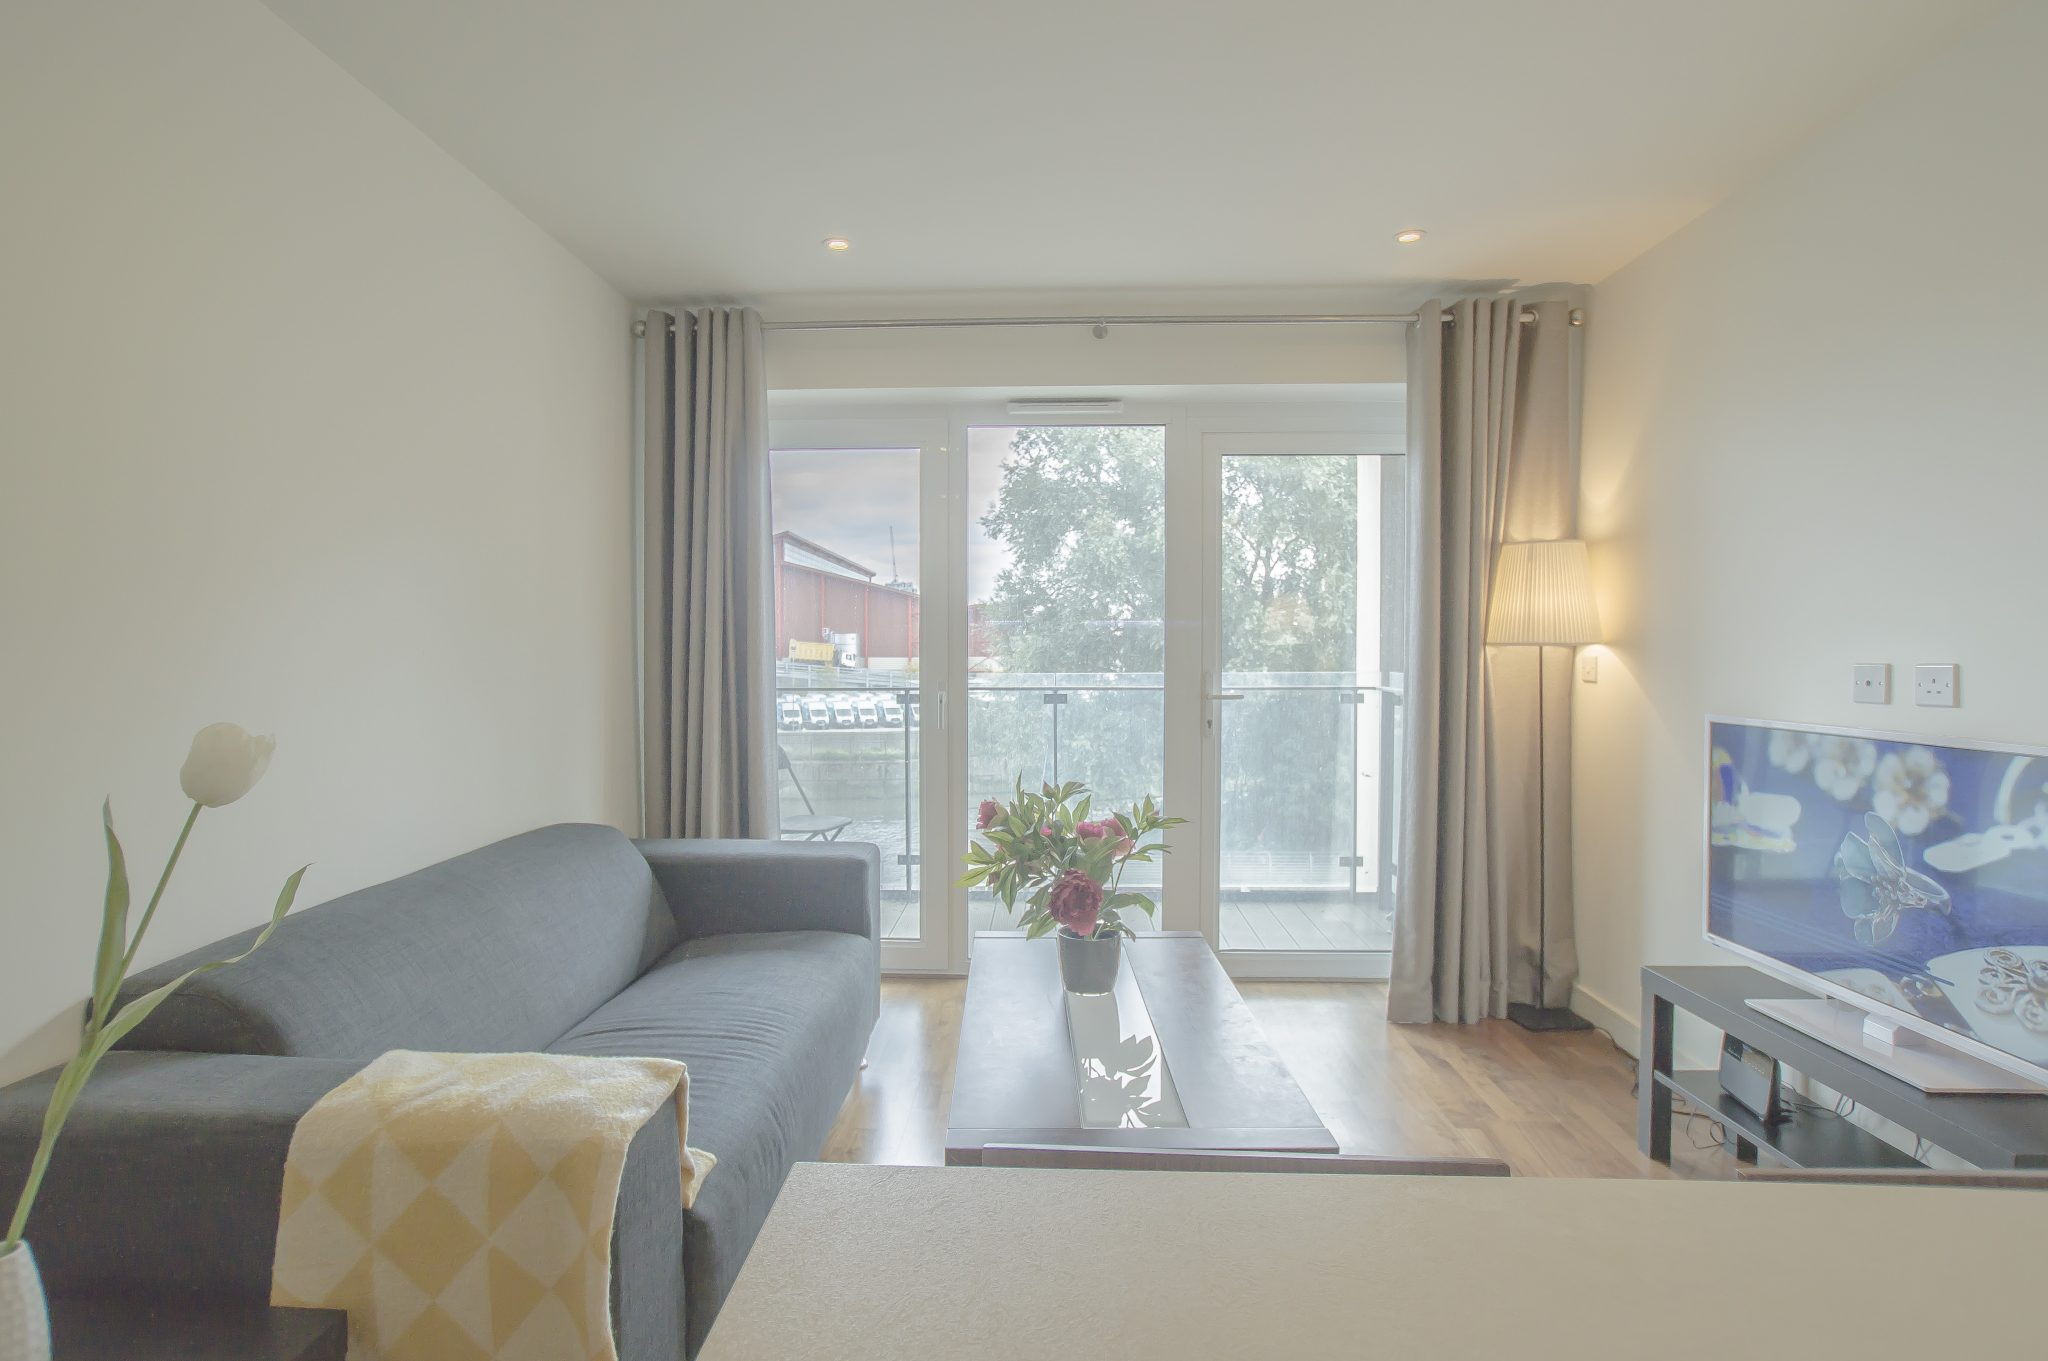 Airbnb Photography Services London